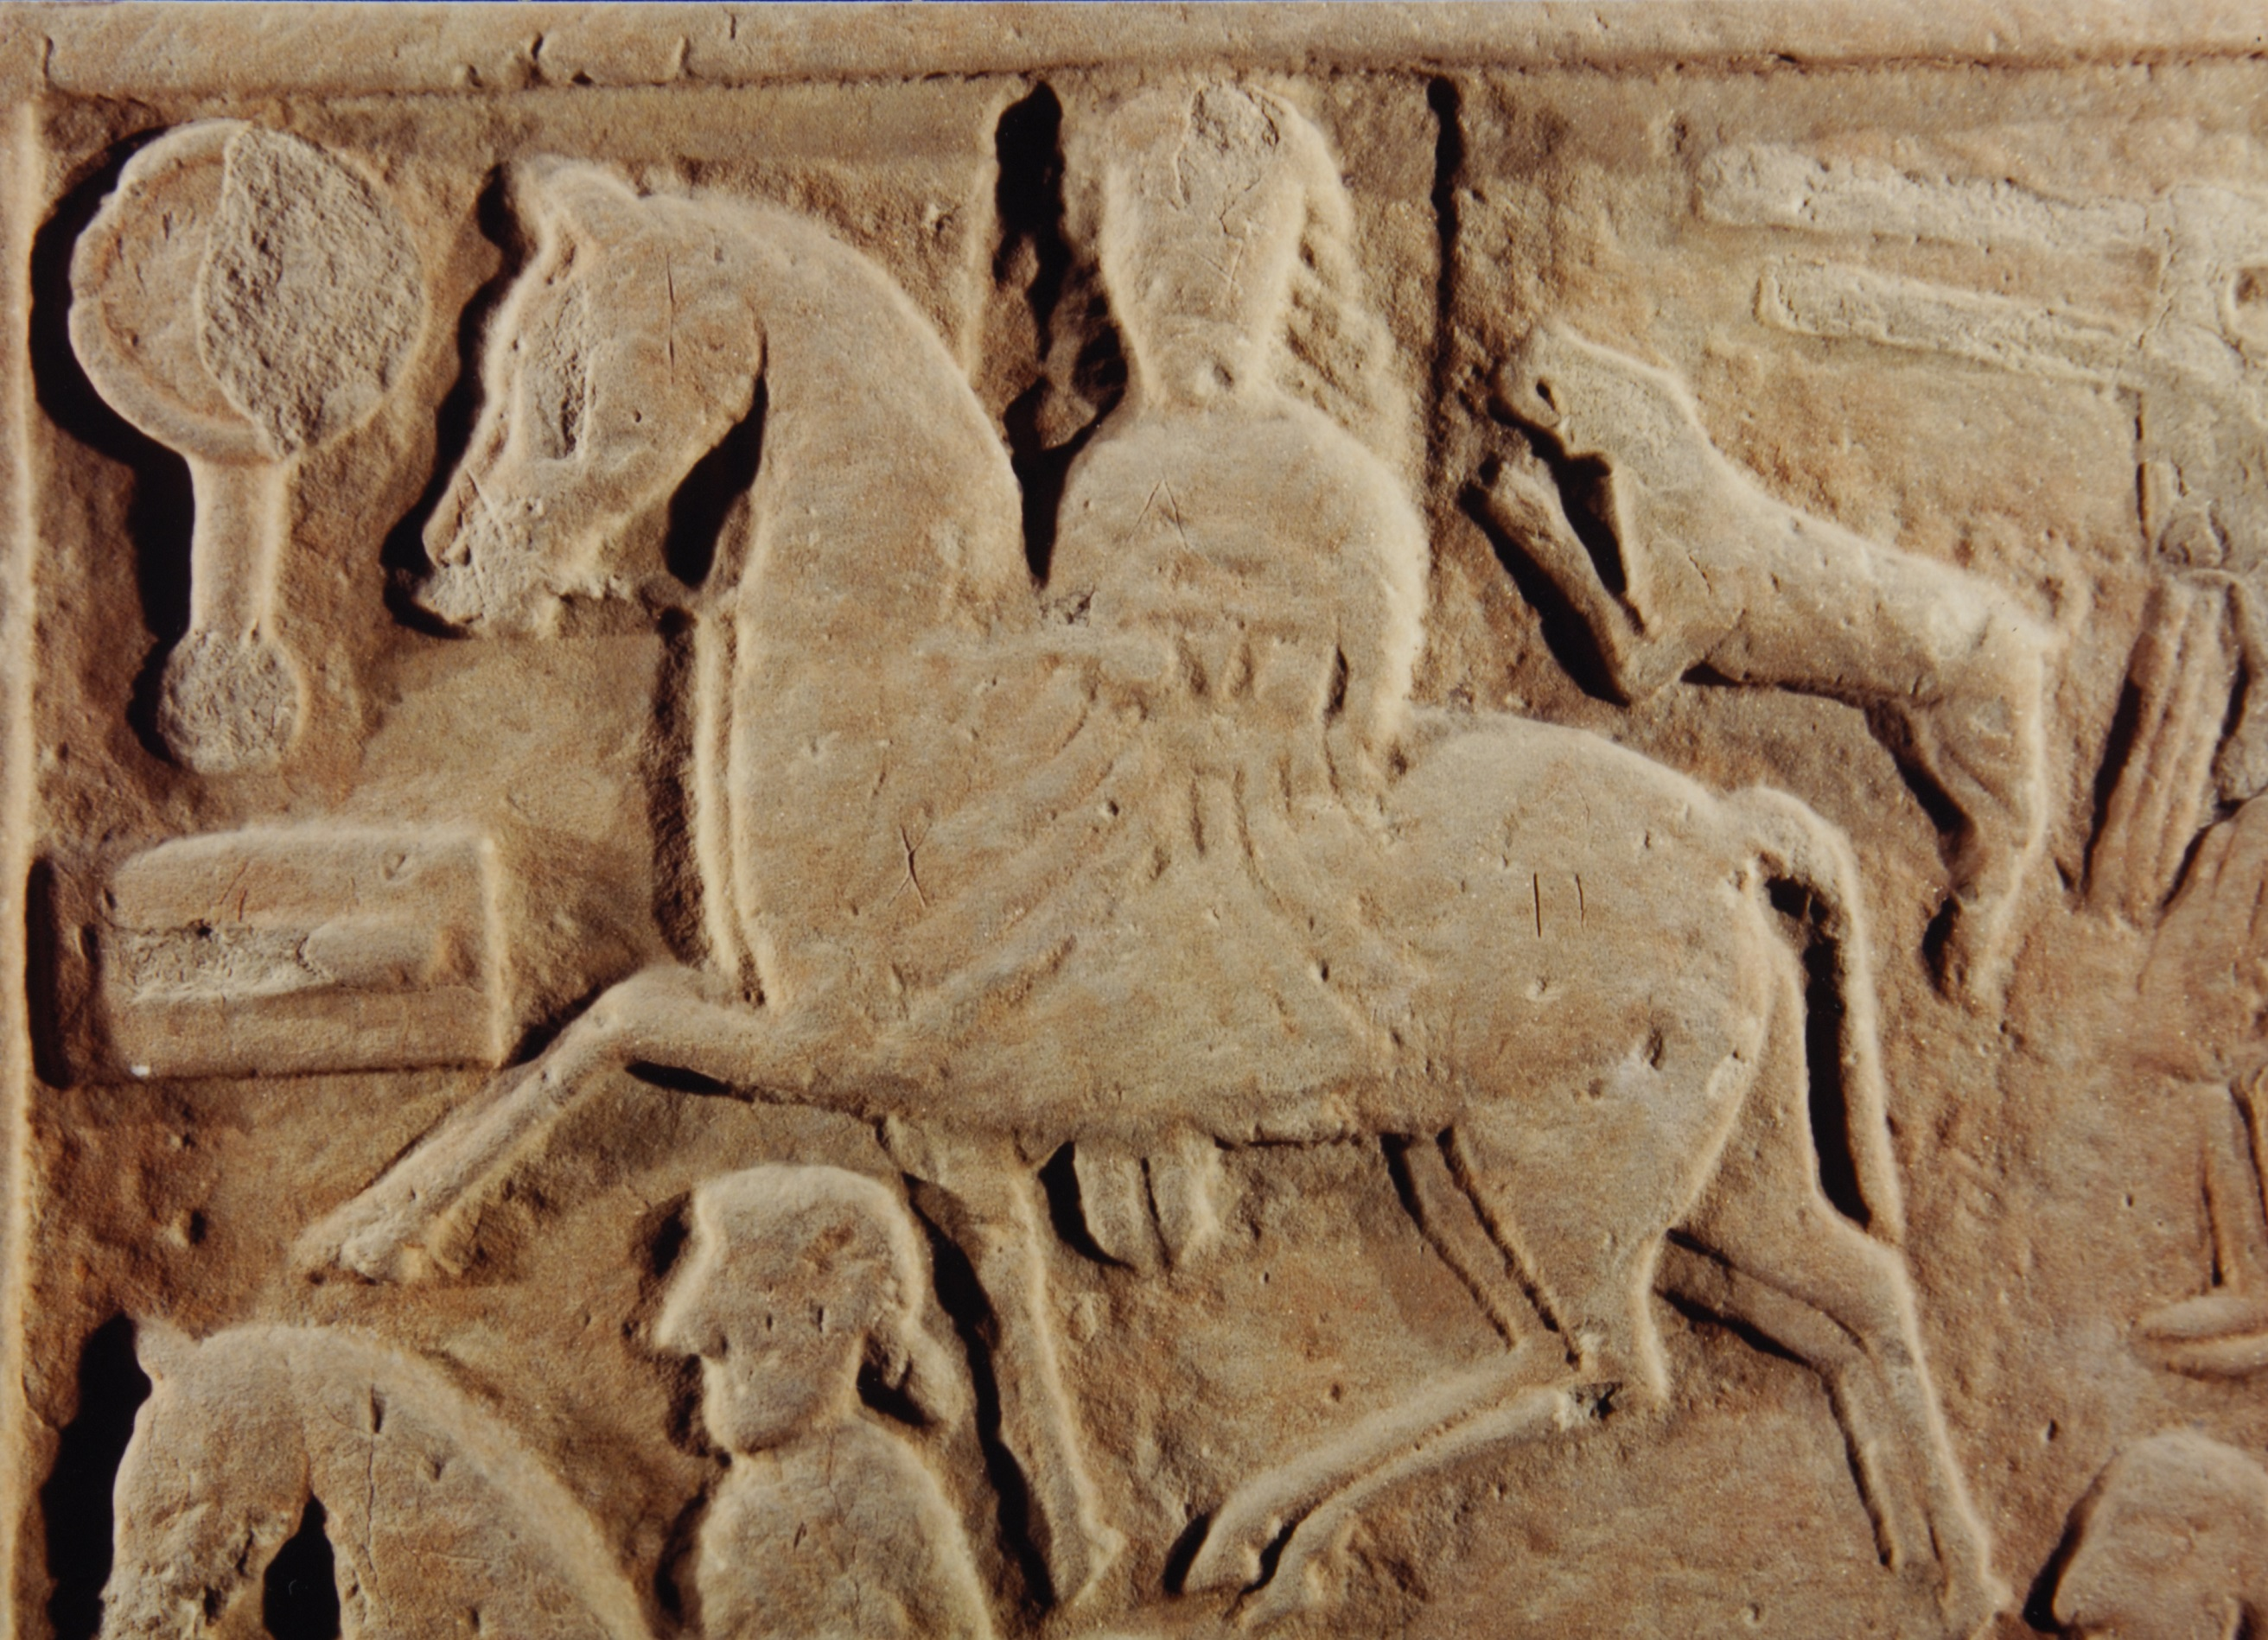 Detail of the Hilton of Cadboll Pictish Stone, showing woman on horseback.